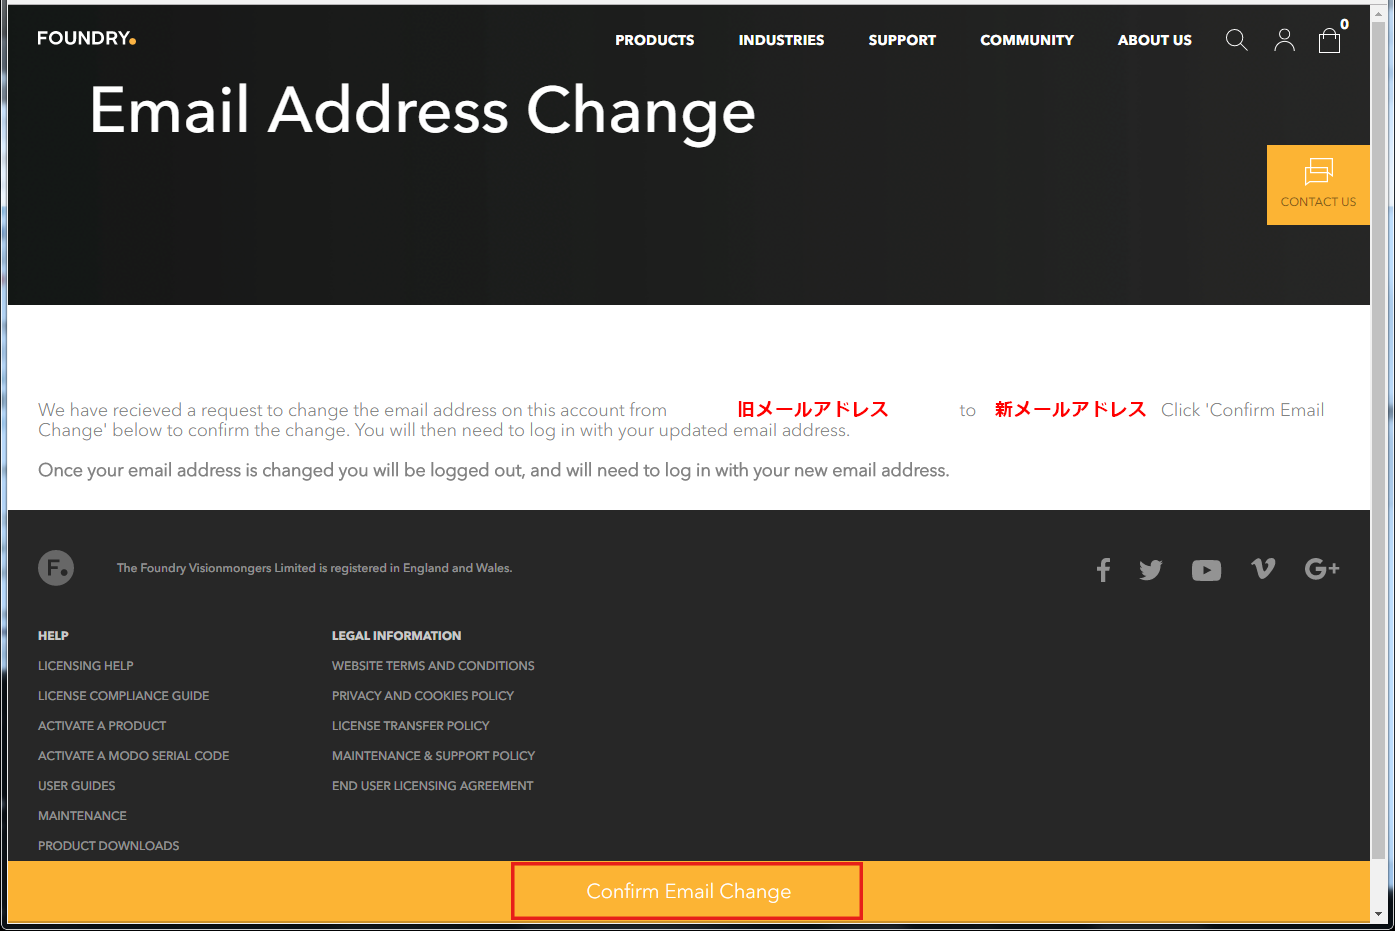 Change_Email_Address_pass_foundry_com_07